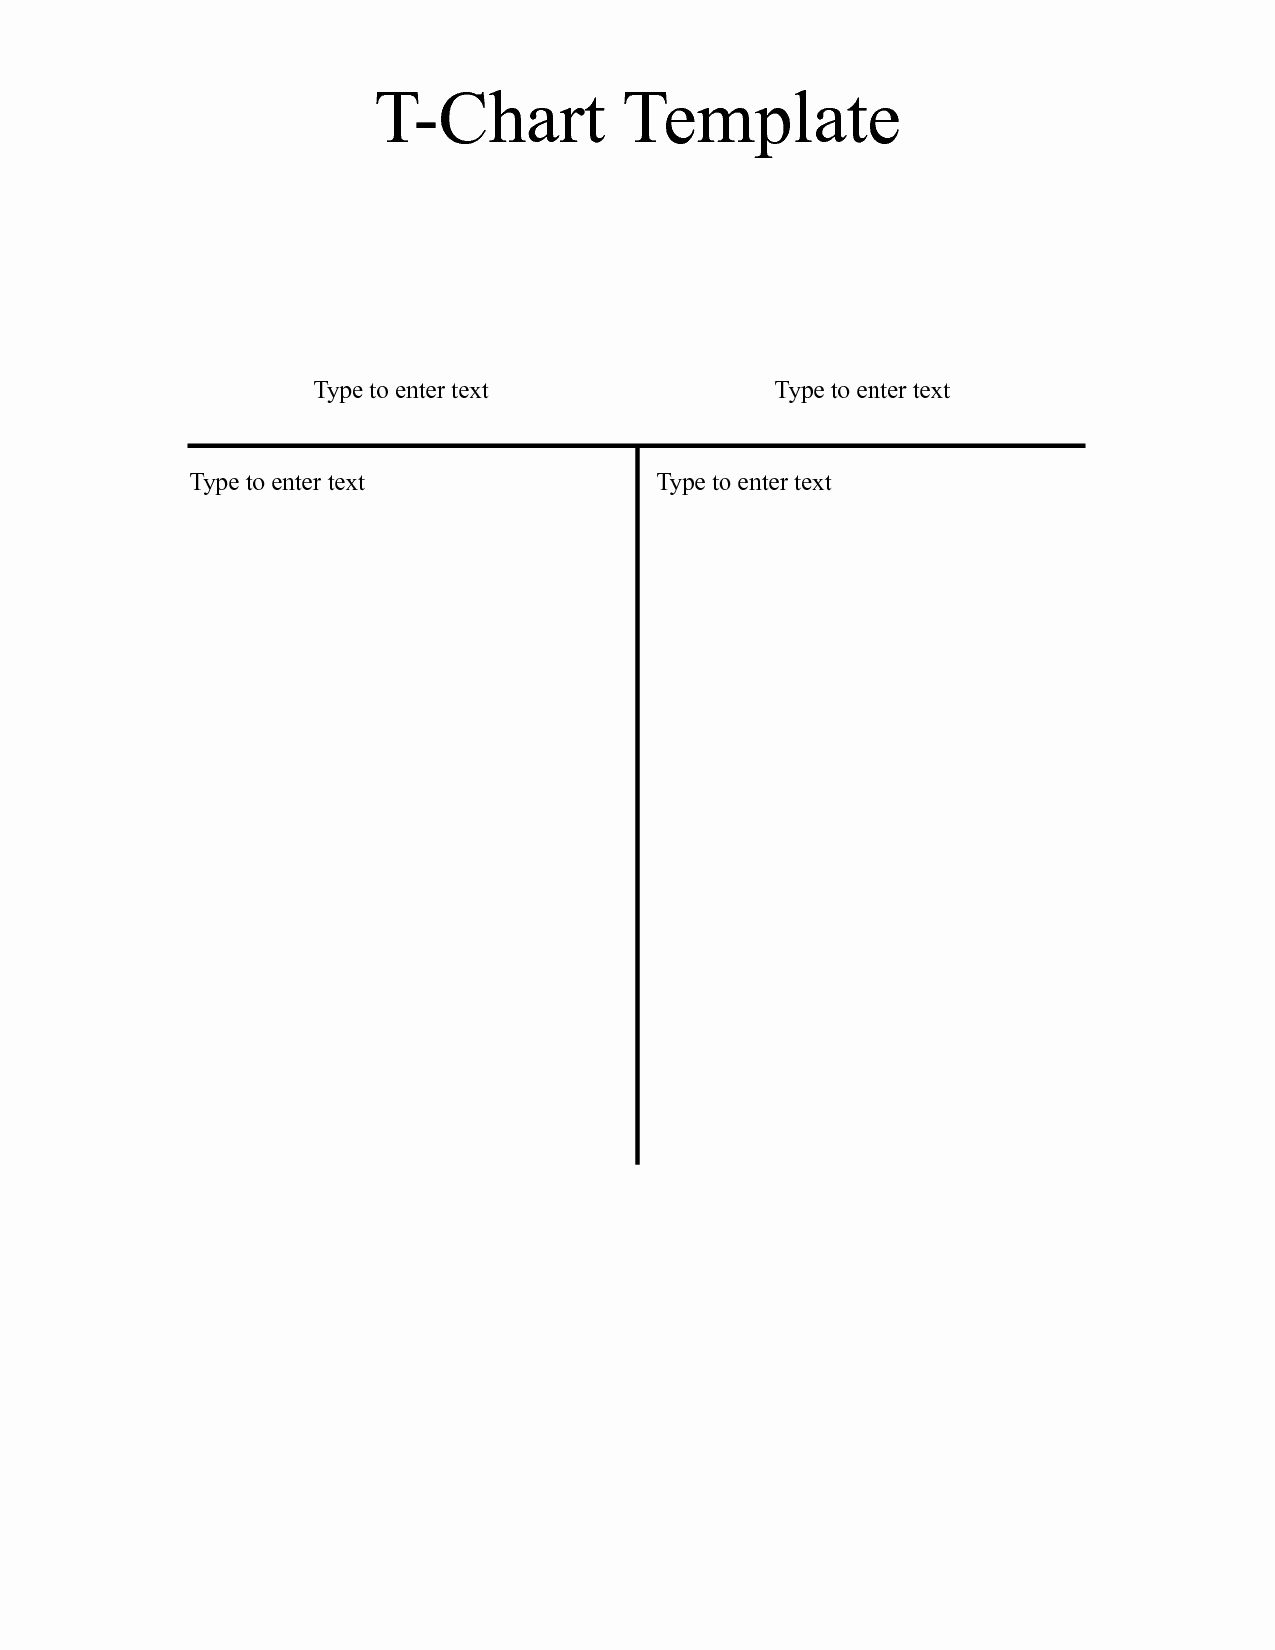 T Chart Template Word Fresh T Chart Template